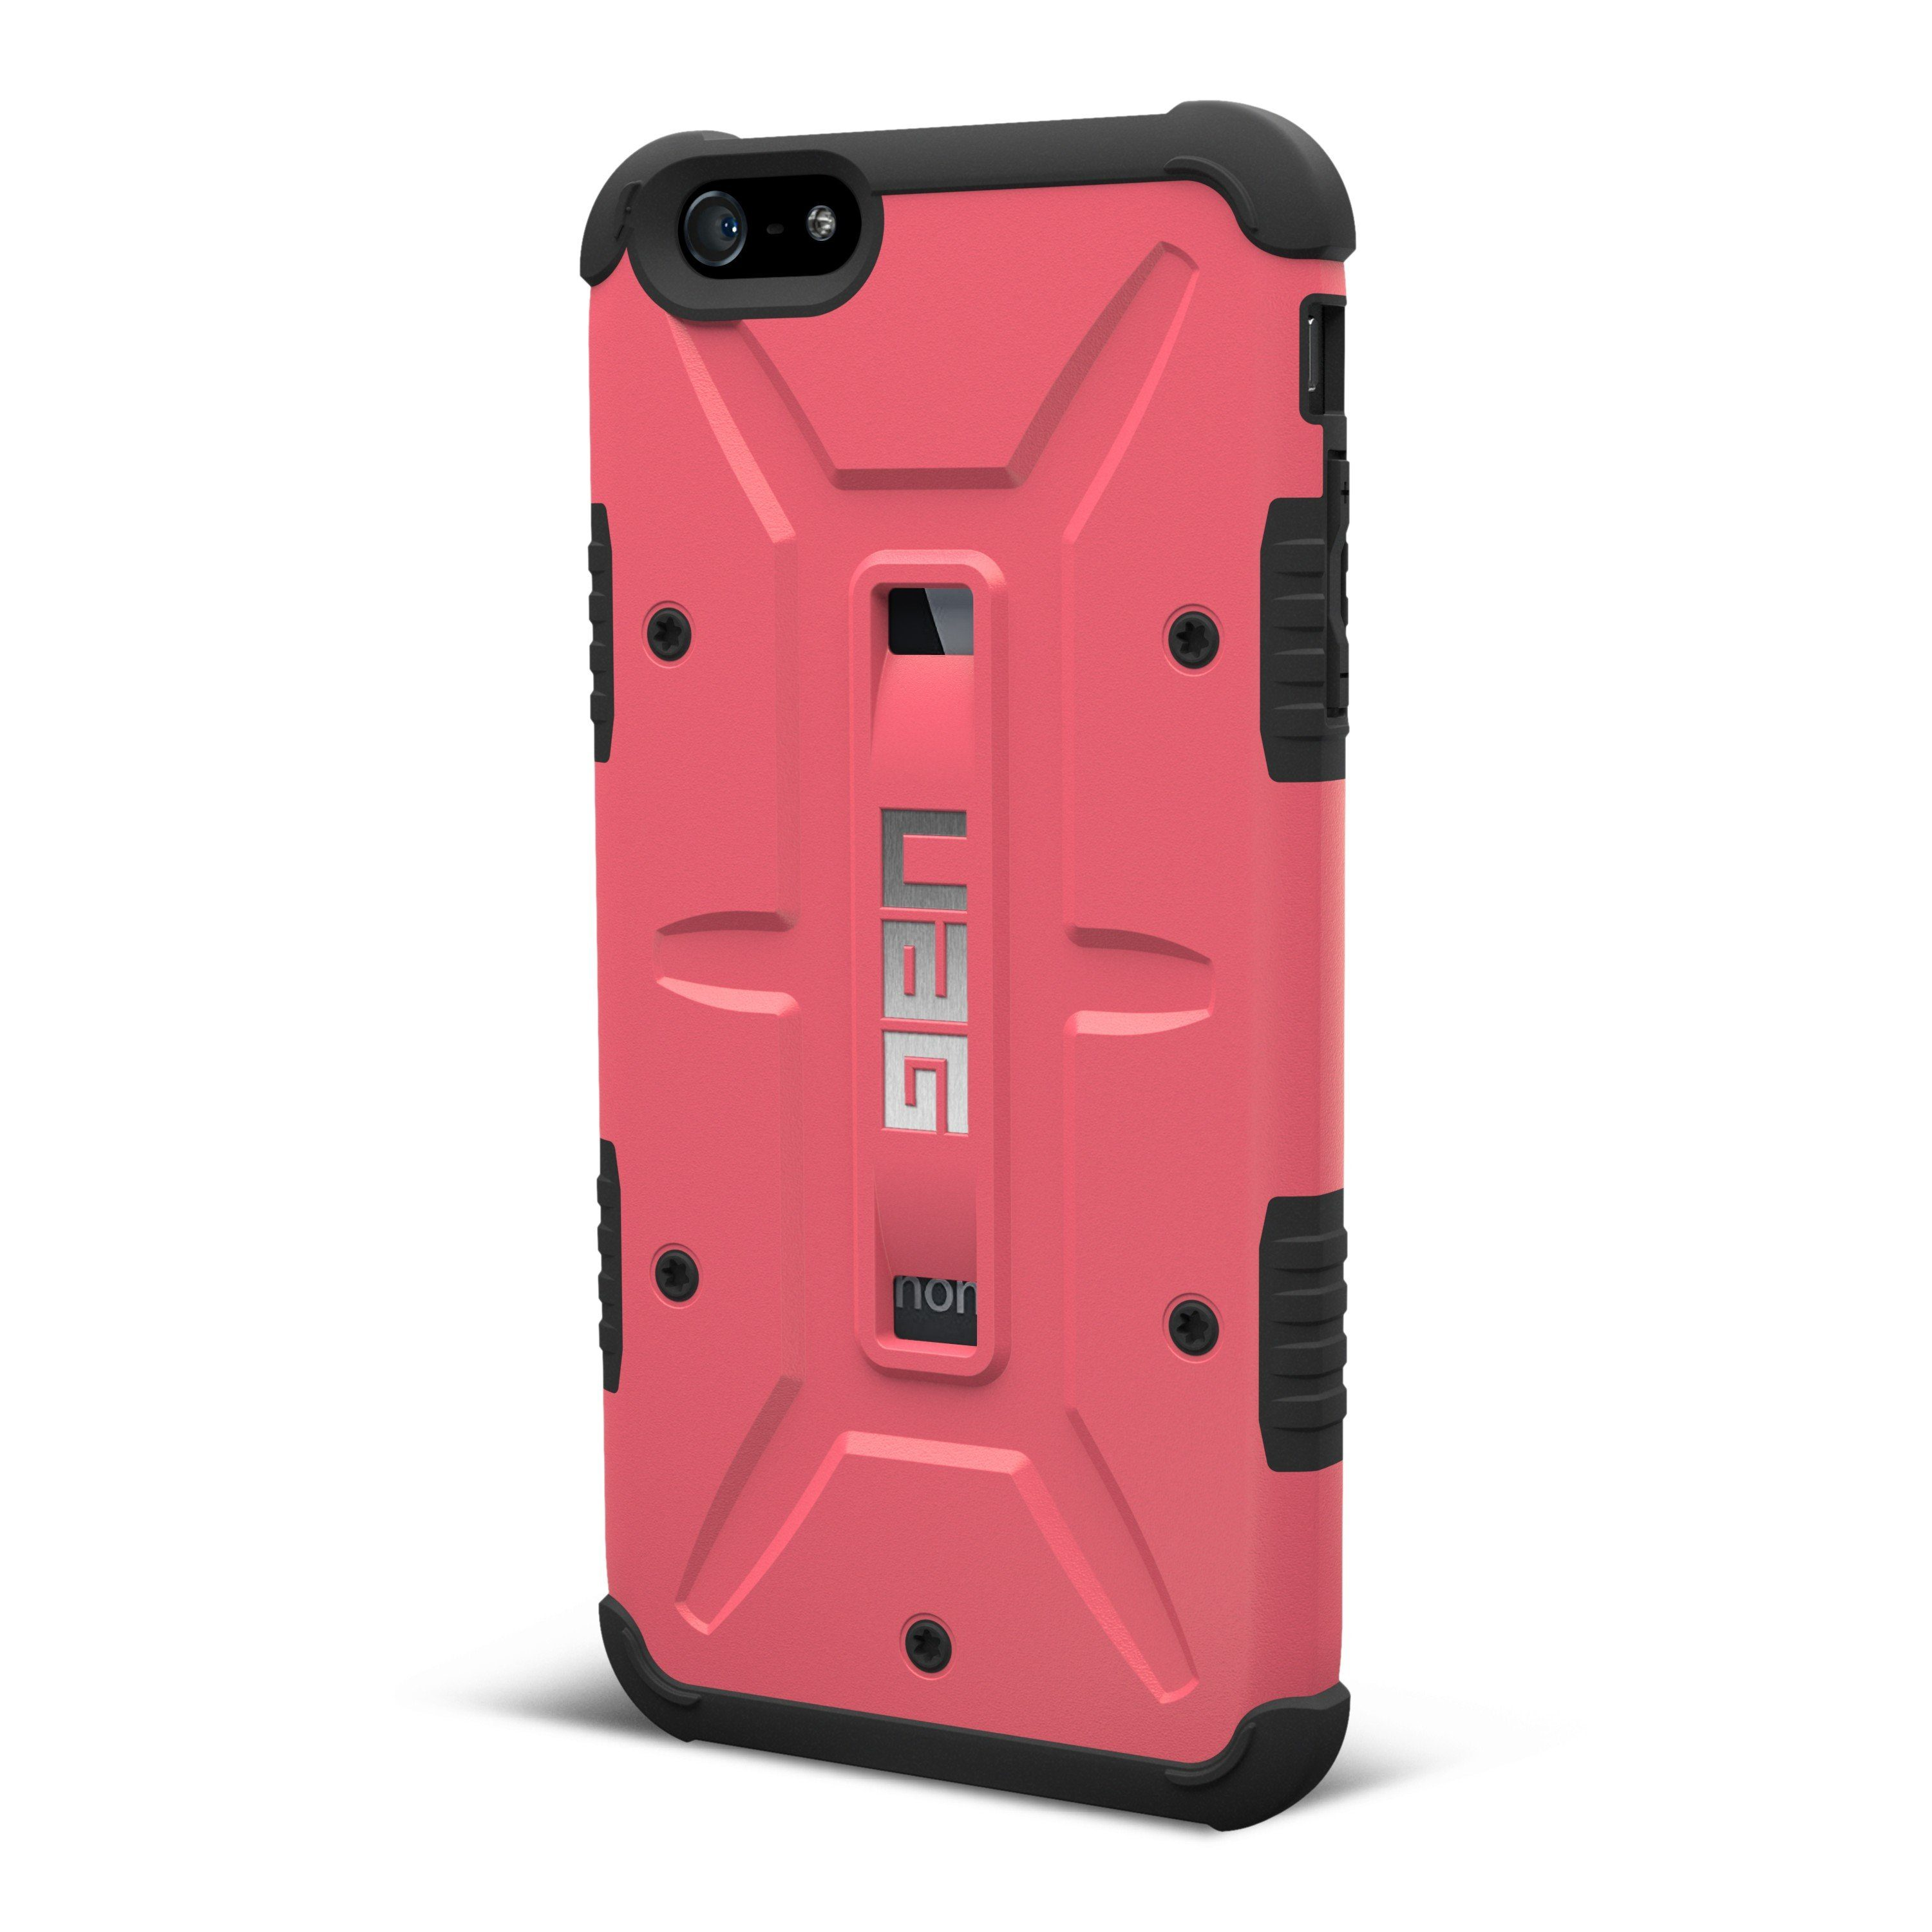 UAG Hartschale für iPhone 6/6S Plus »Composite Case iPhone 6/6S Plus«